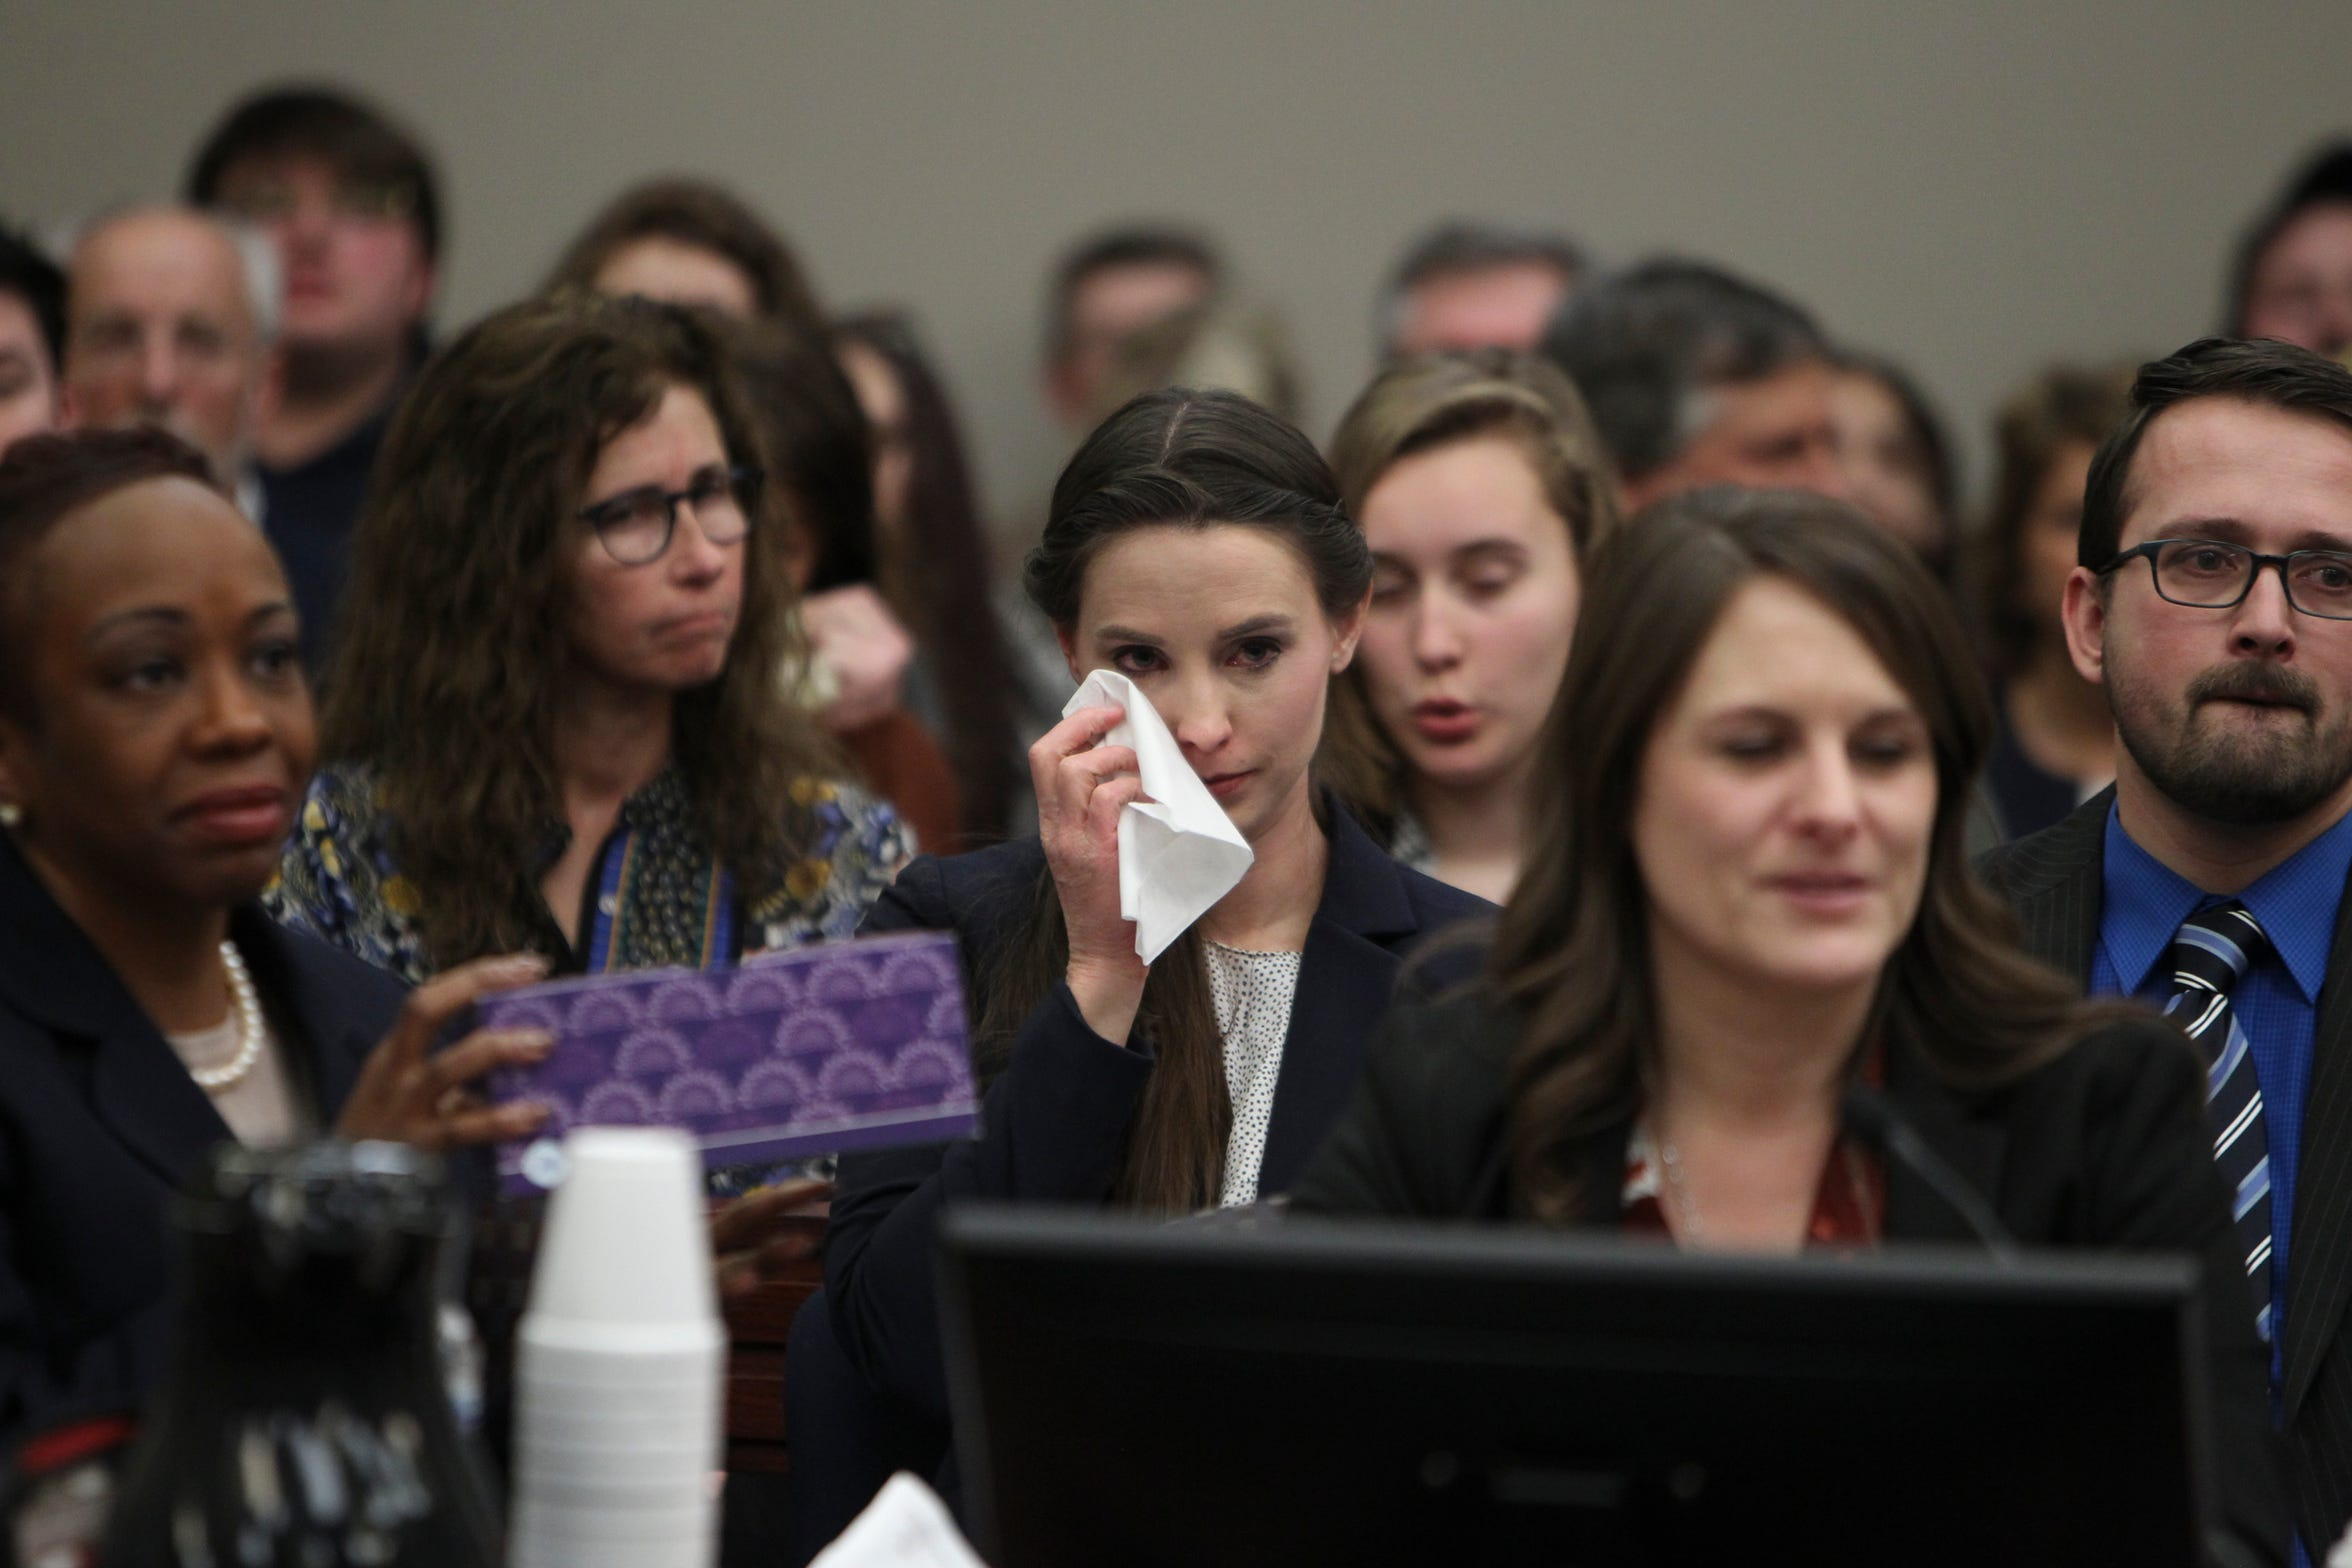 In this Jan. 24, 2018 photo, Rachael Denhollander wipes a tear from her eye as Larry Nassar, who admitted molesting some of the nation's top gymnasts for years, is sentenced, during the sixth day of victim impact statements in Ingham County Circuit Court in Lansing, Mich.